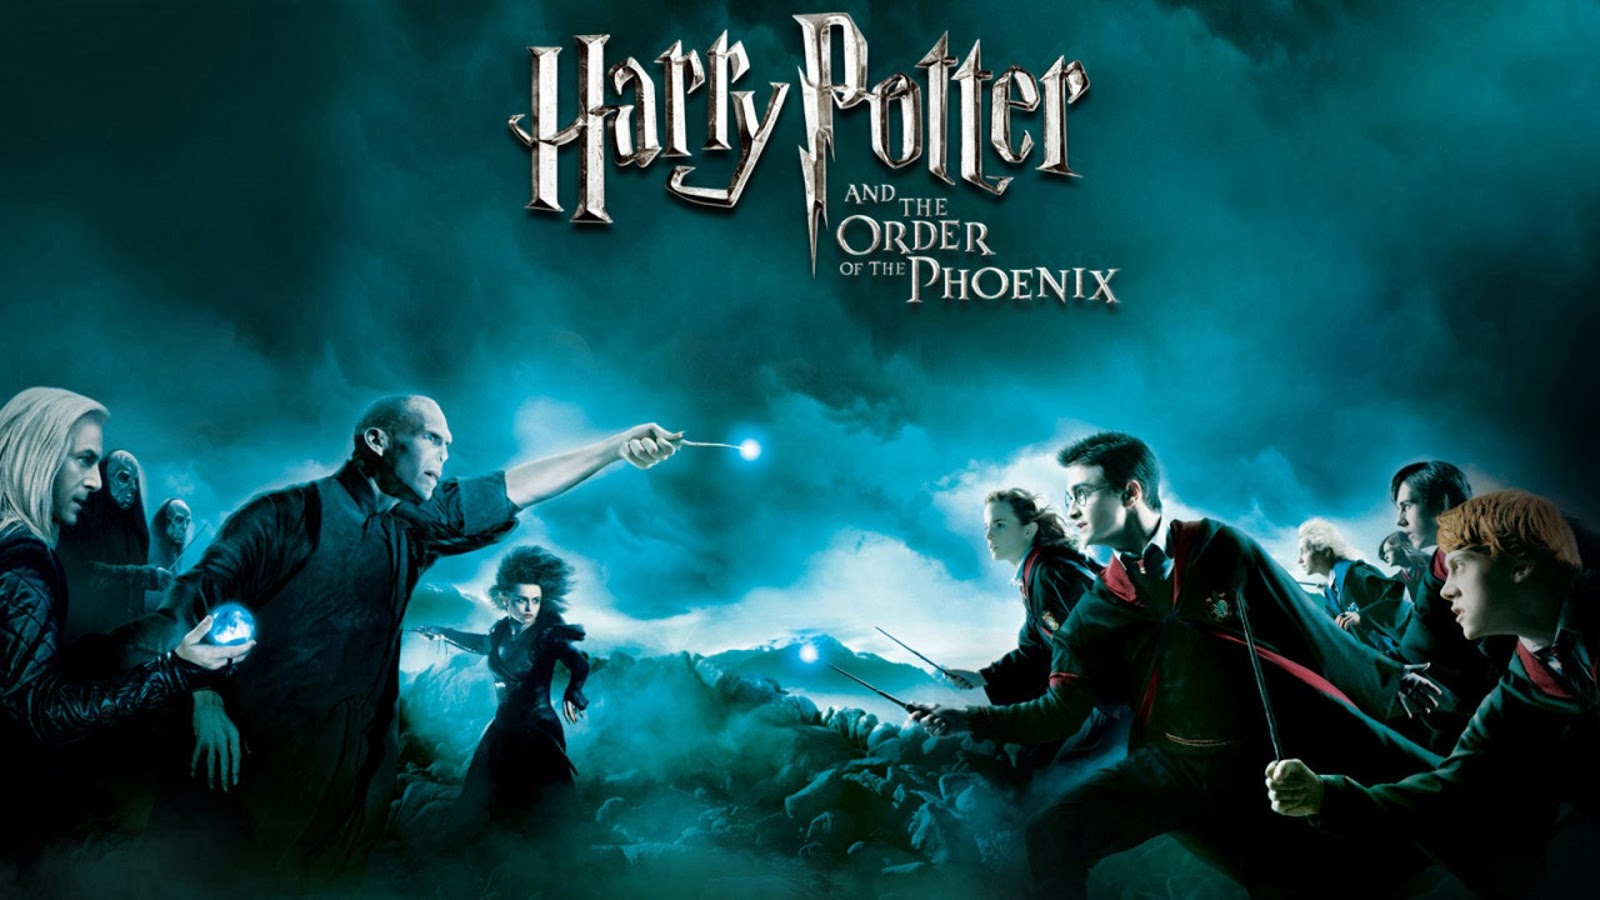 HARRY POTTER AND THE ORDER OF THE PHOENIX TAMIL DUBBED HD